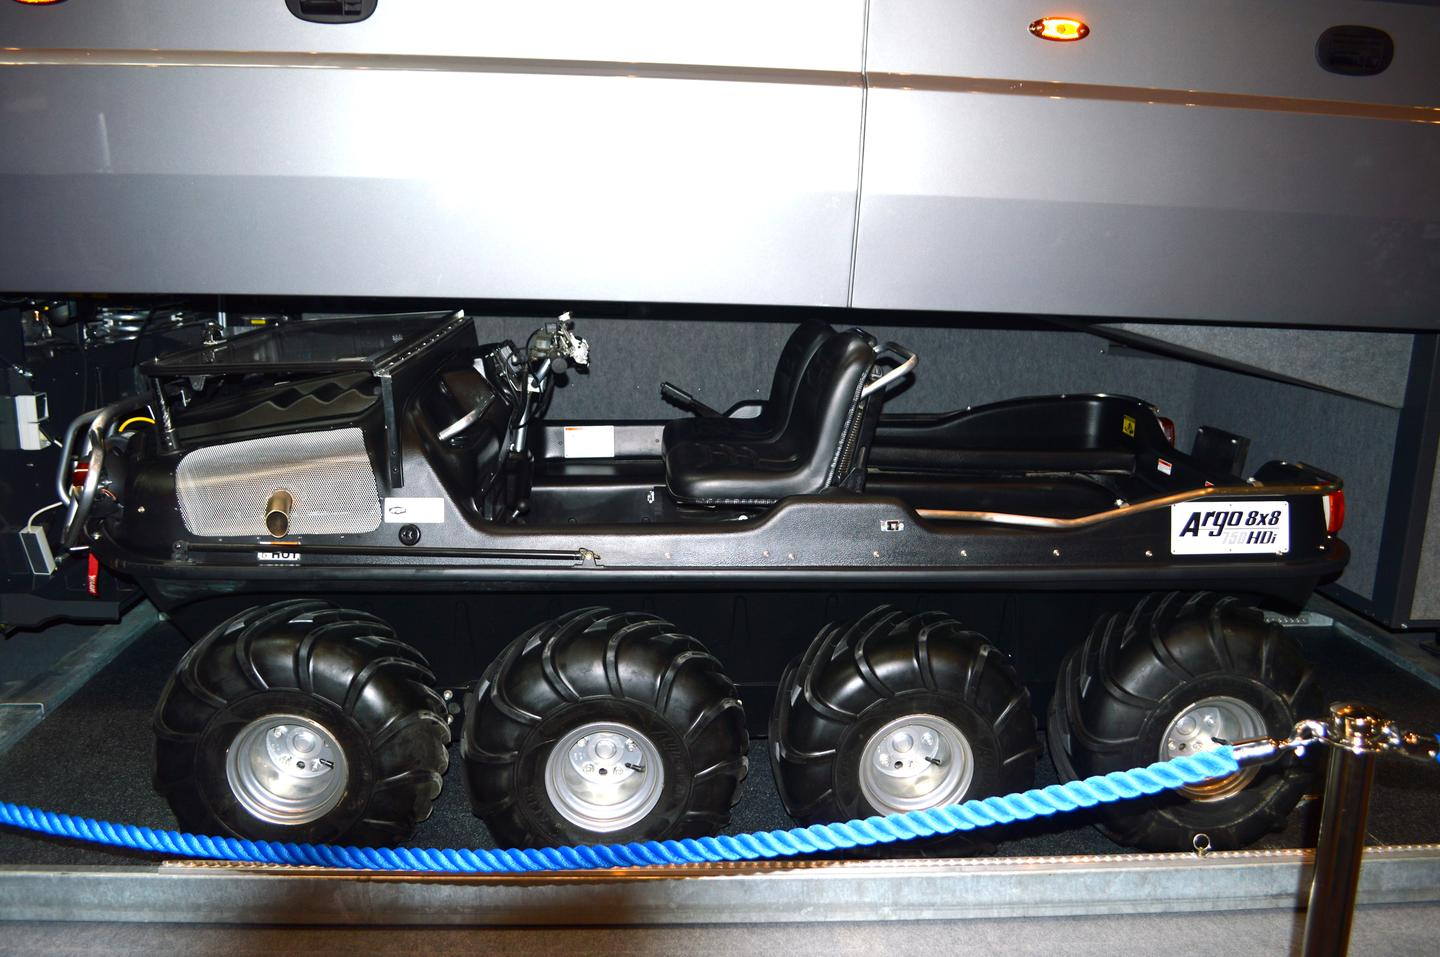 The ARGO 8x8 750 HDi, shown tucked inside a Volkner Mobil RV at the 2013 Dusseldorf Caravan Salon, serves as the powertrain base for the XTI